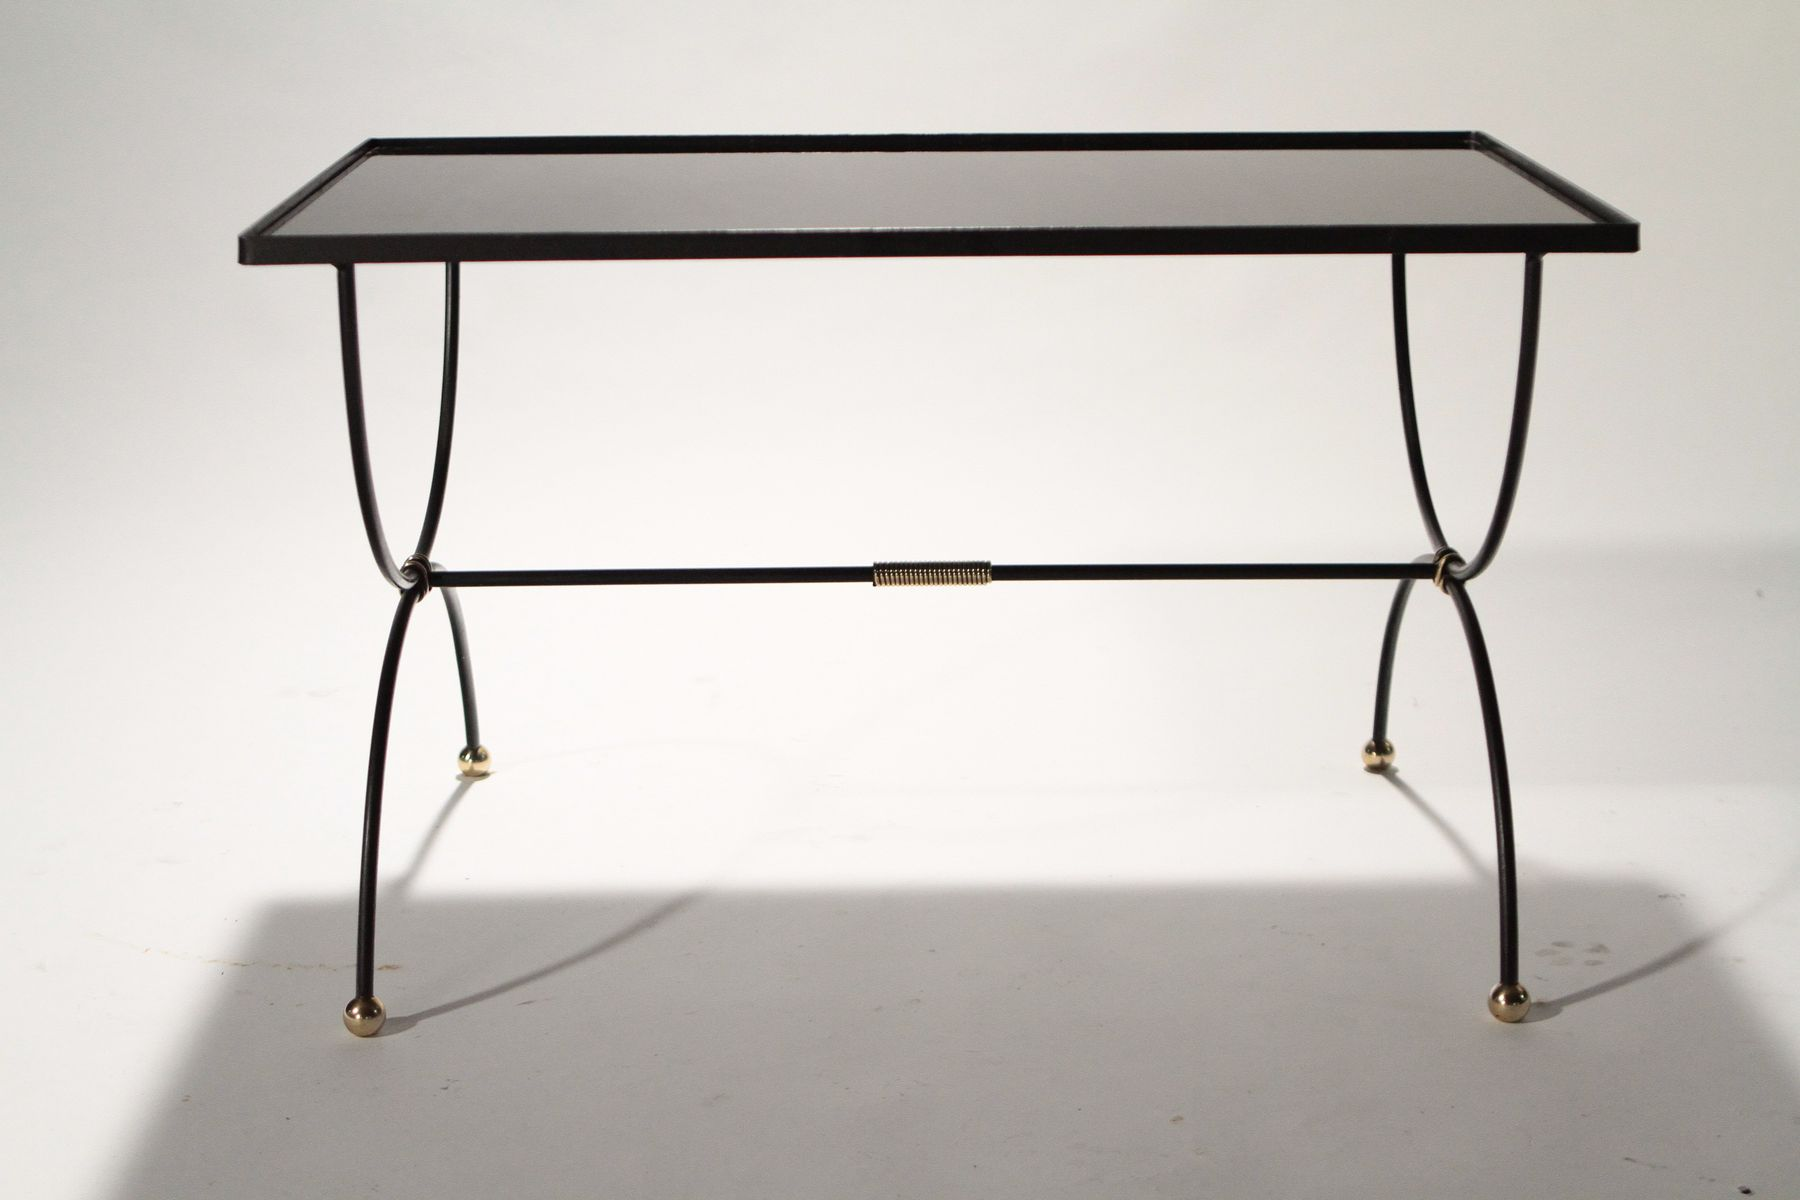 Mid century wrought iron coffee table 1950s for sale at for Wrought iron coffee table for sale